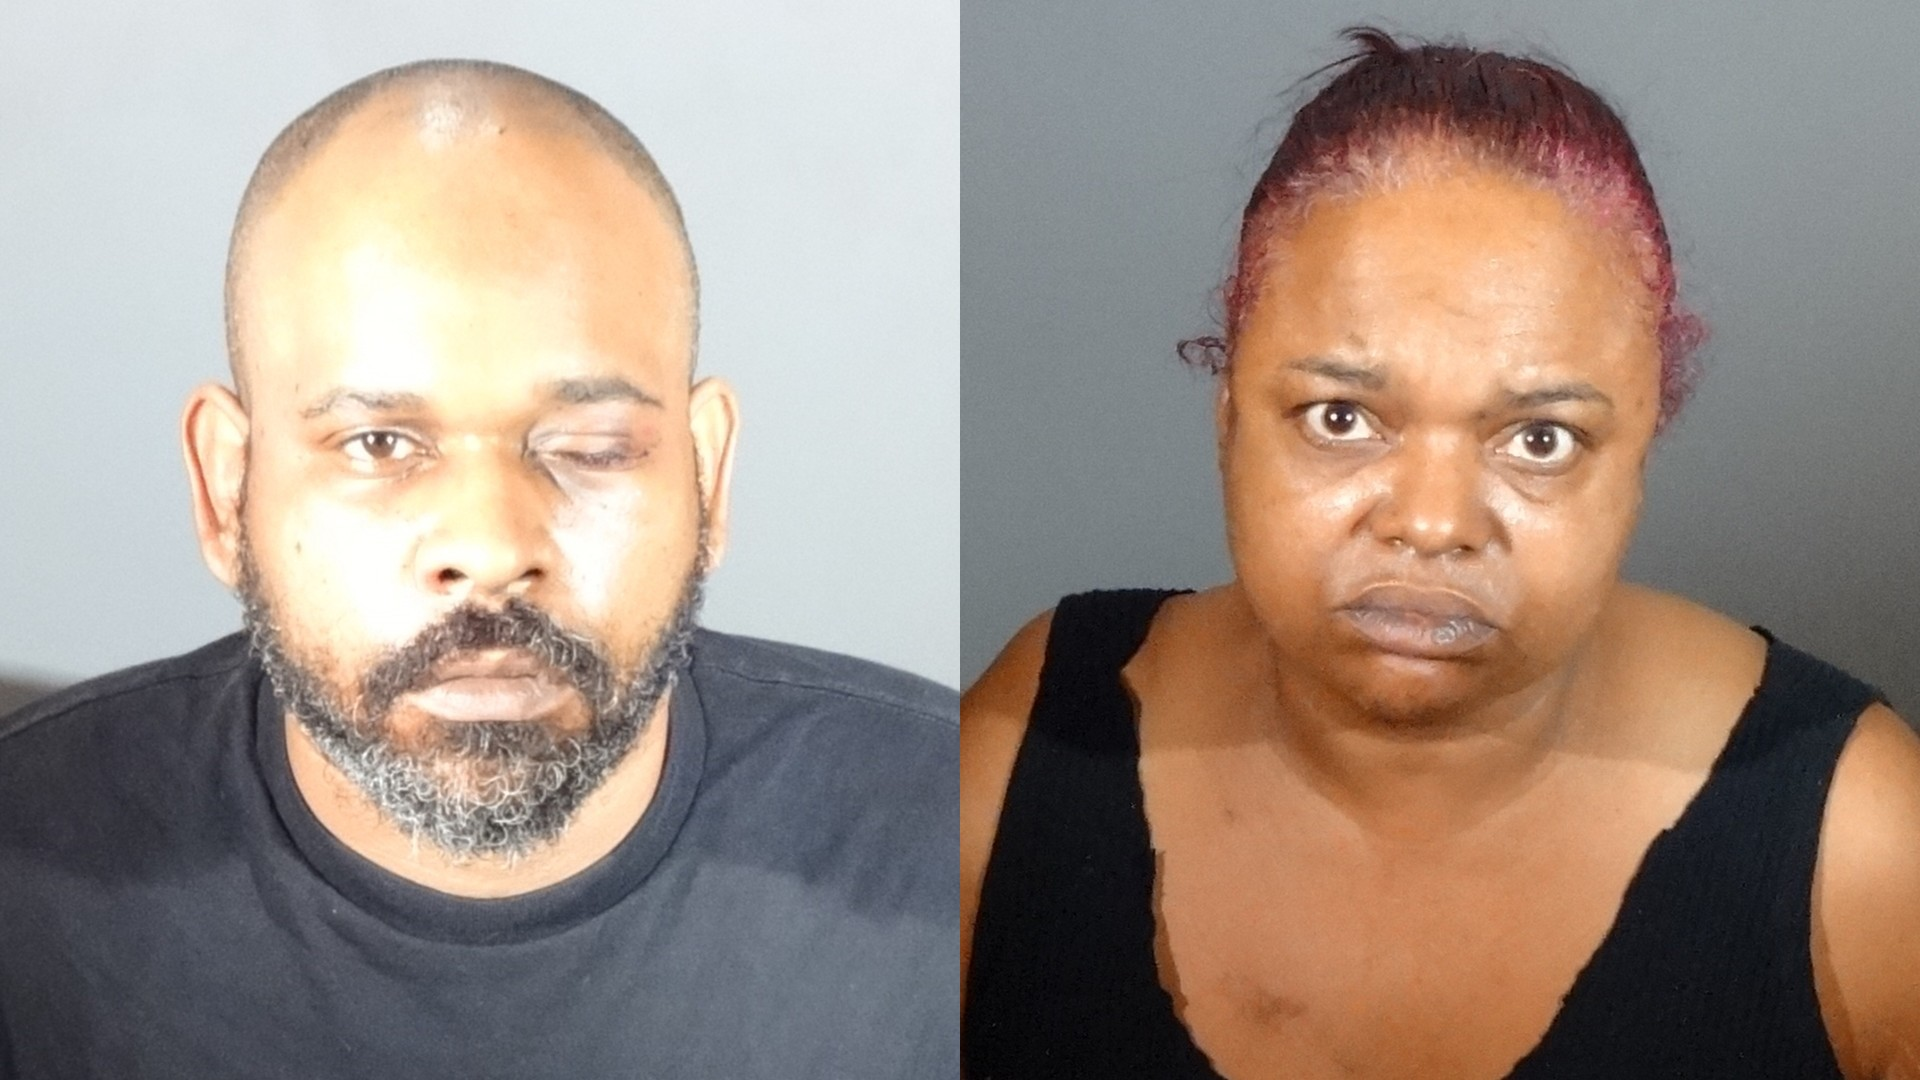 Umeir Hawkins, left, and Sabrina Carter, right, are seen in booking photos released by Gardena police.